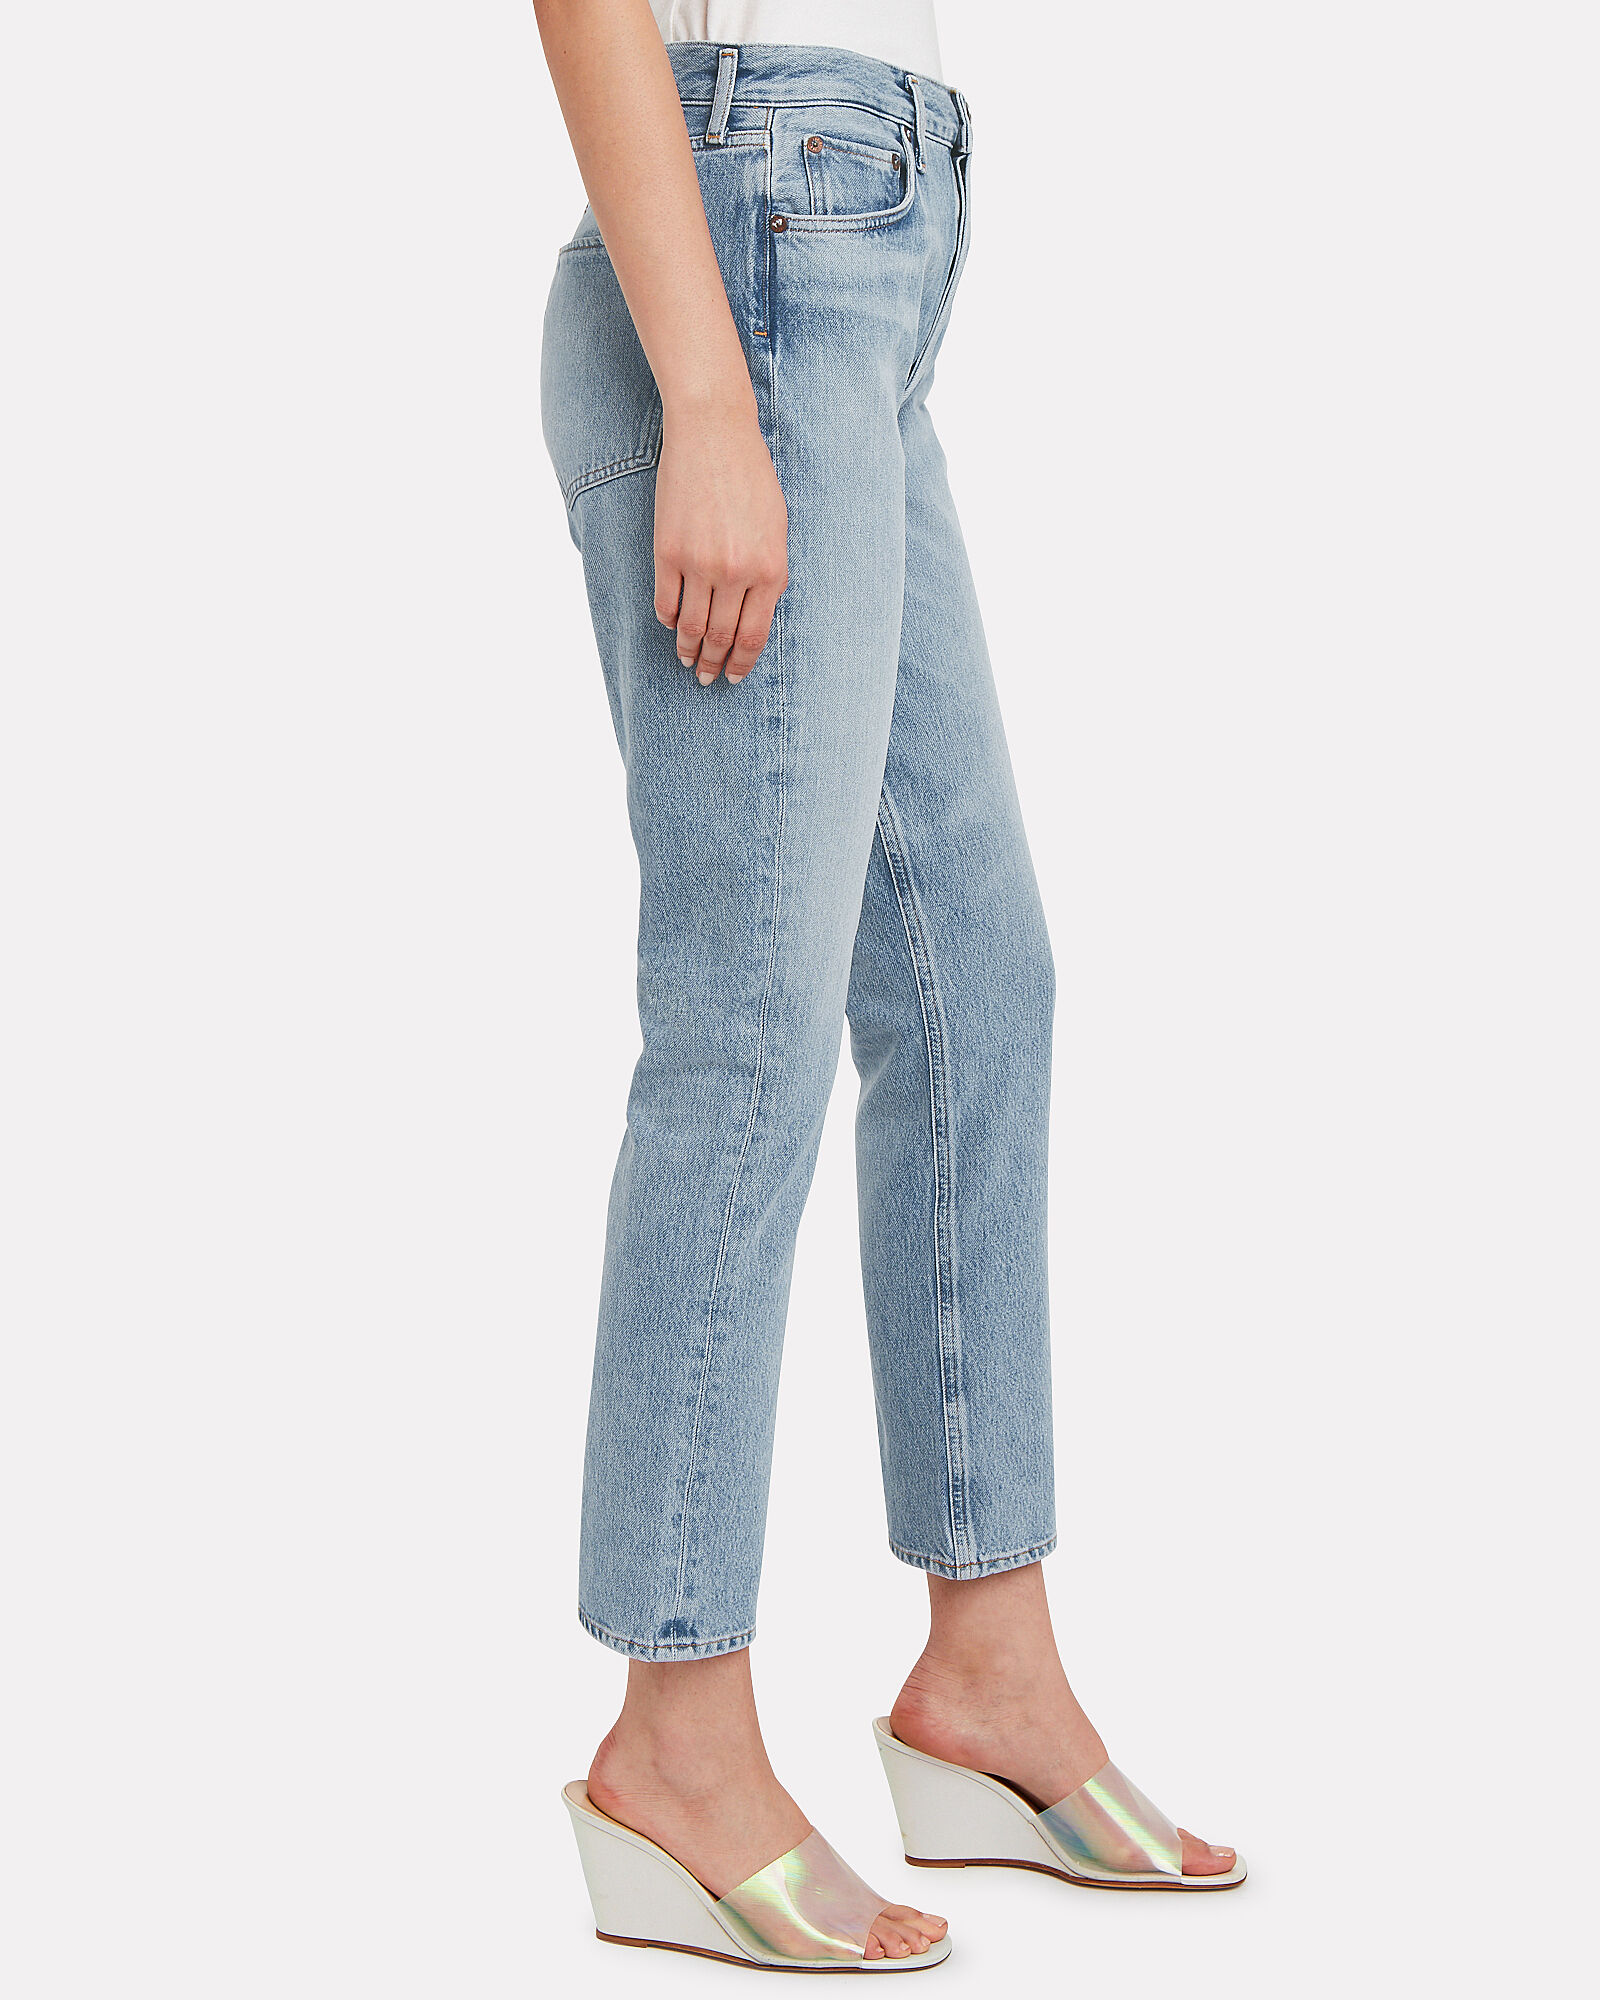 Remy High-Rise Straight Jeans, DENIM-LT, hi-res